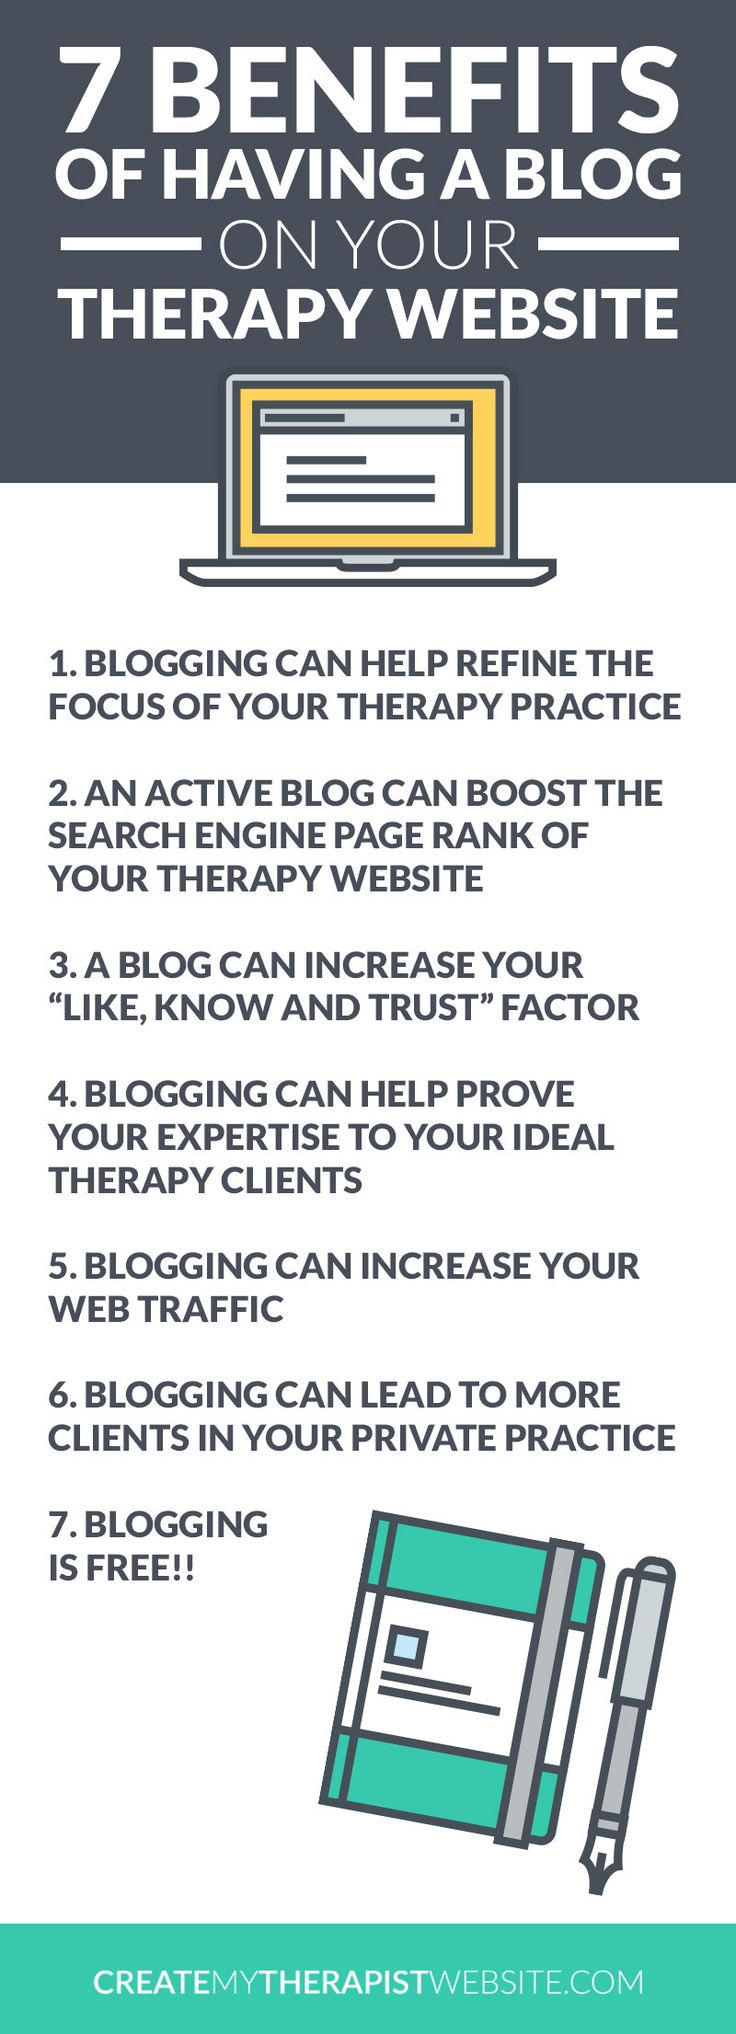 "Infographic: 7 Benefits of Having a Blog on Your Therapy Website // With all the talk out there about ""content marketing"" and blogging, it's really important to know if starting a private practice blog is right for you and your website. In this post we'll talk about the benefits of blogging and determine if this marketing strategy is right for you and your therapy practice. Click here to read:"